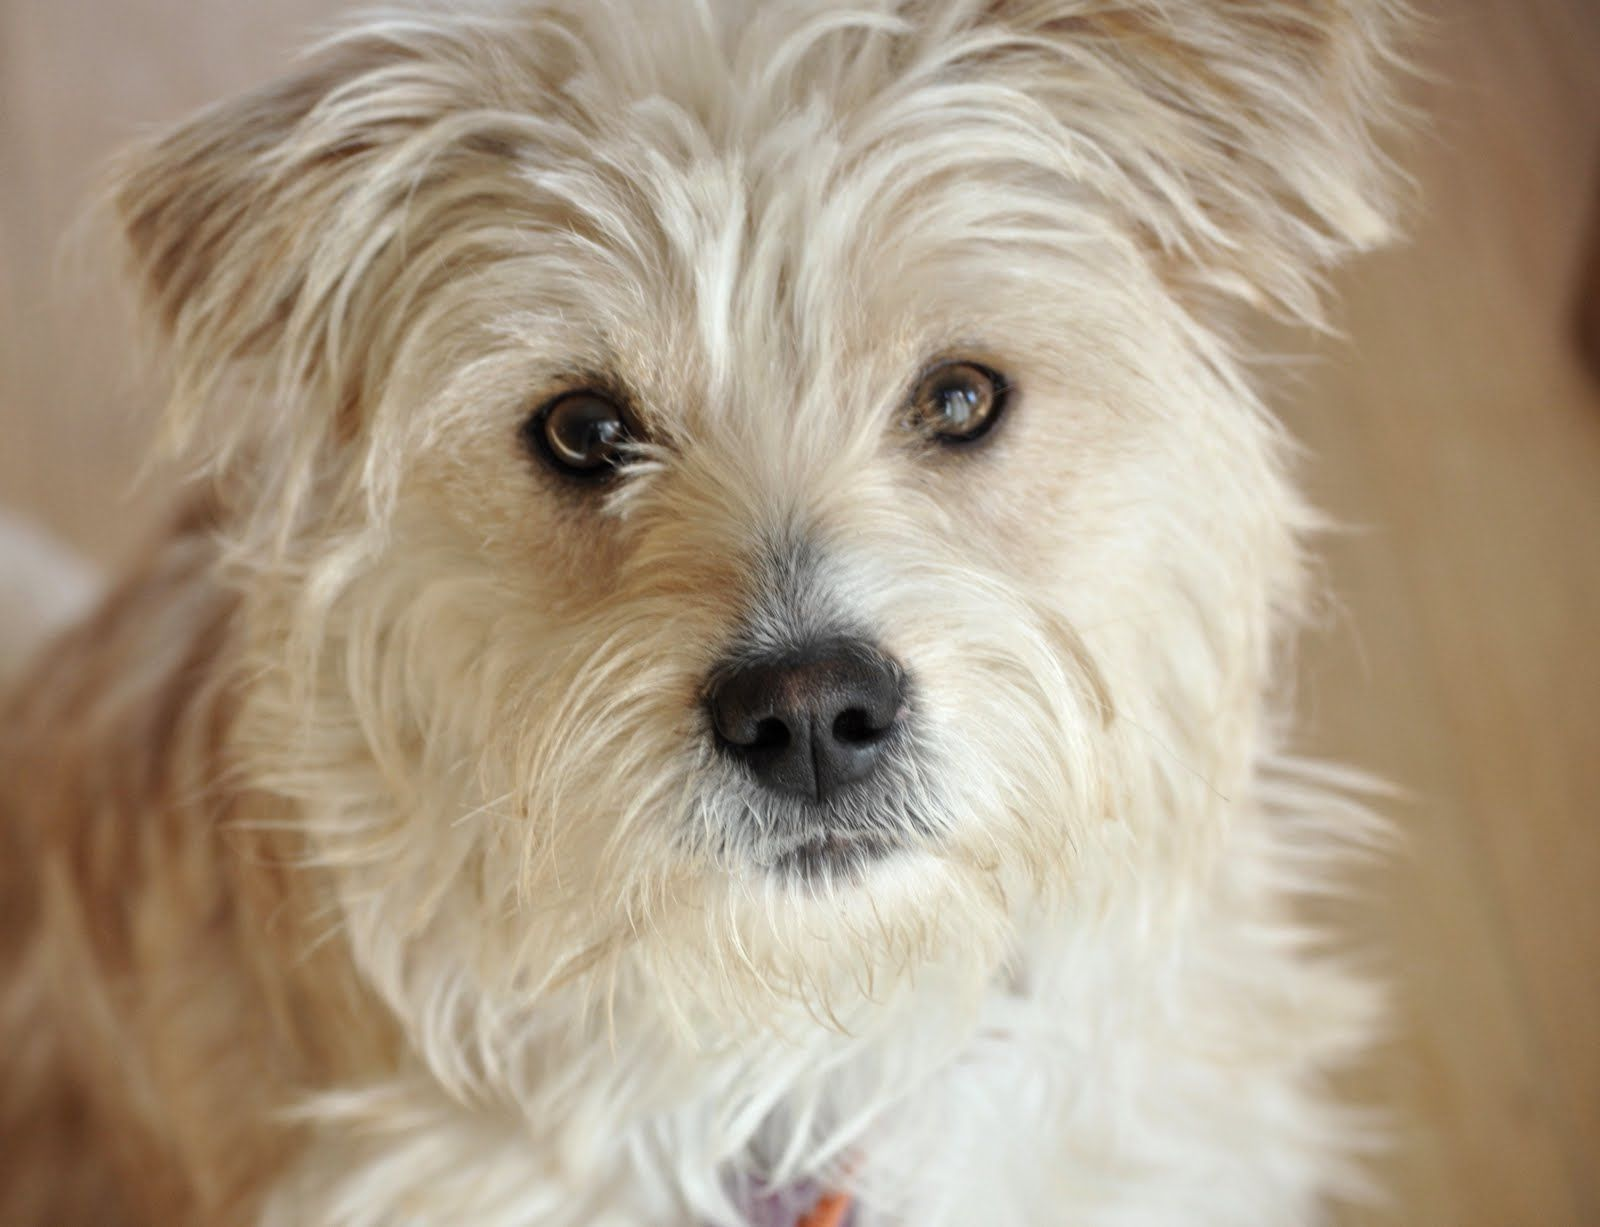 Small Fluffy Dog Breeds Cricket S Fluffy Foster Friends Wheatable Fluffy Dog Breeds Fluffy Dogs Small Fluffy Dog Breeds